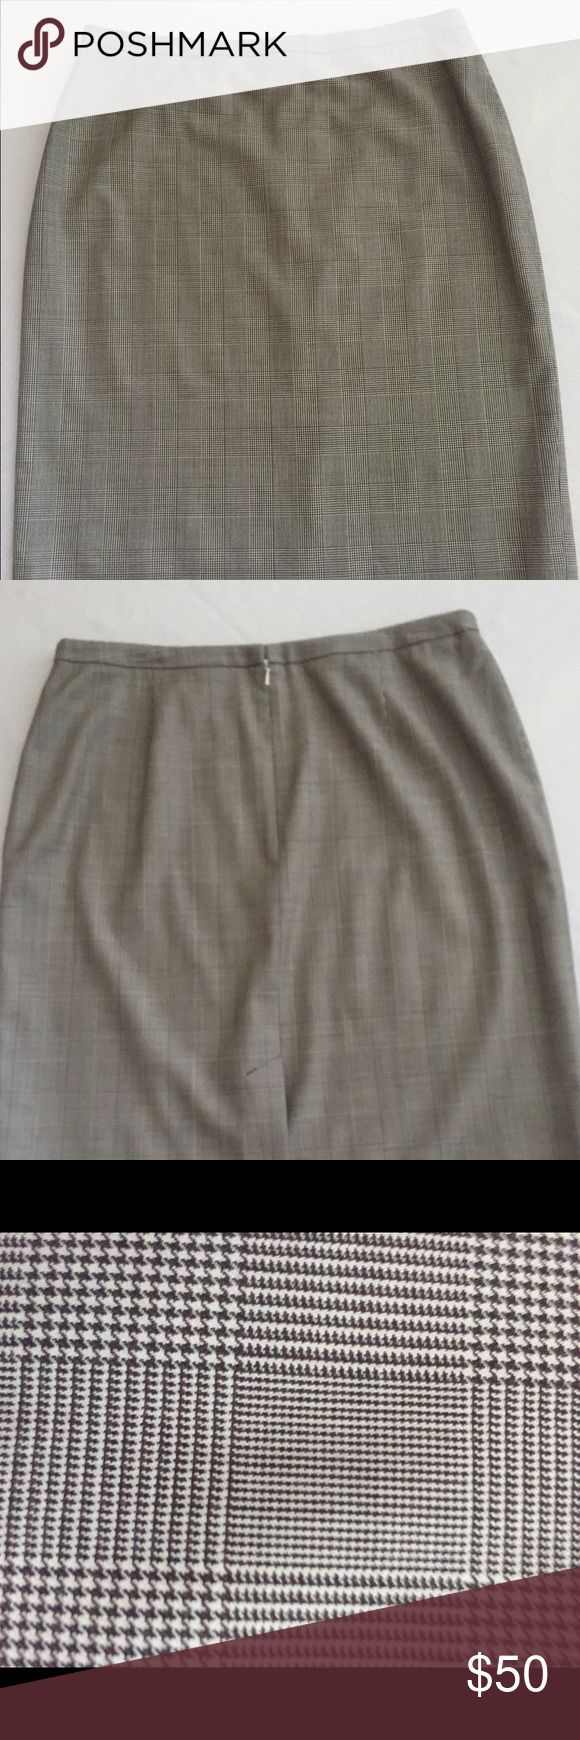 "Brooks Brothers Four Seasons Super 120's skirt. Excellent condition. Size 12. Classic brown/cream/navy Prince of Wales pattern. Straight skirt. Back slit. Narrow waistband. Measures approx 23"" from waist. Fabric woven in Italy. 100% wool. Lining 100% silk. Dry clean. Pet free, smoke free home. Brooks Brothers Skirts Pencil"